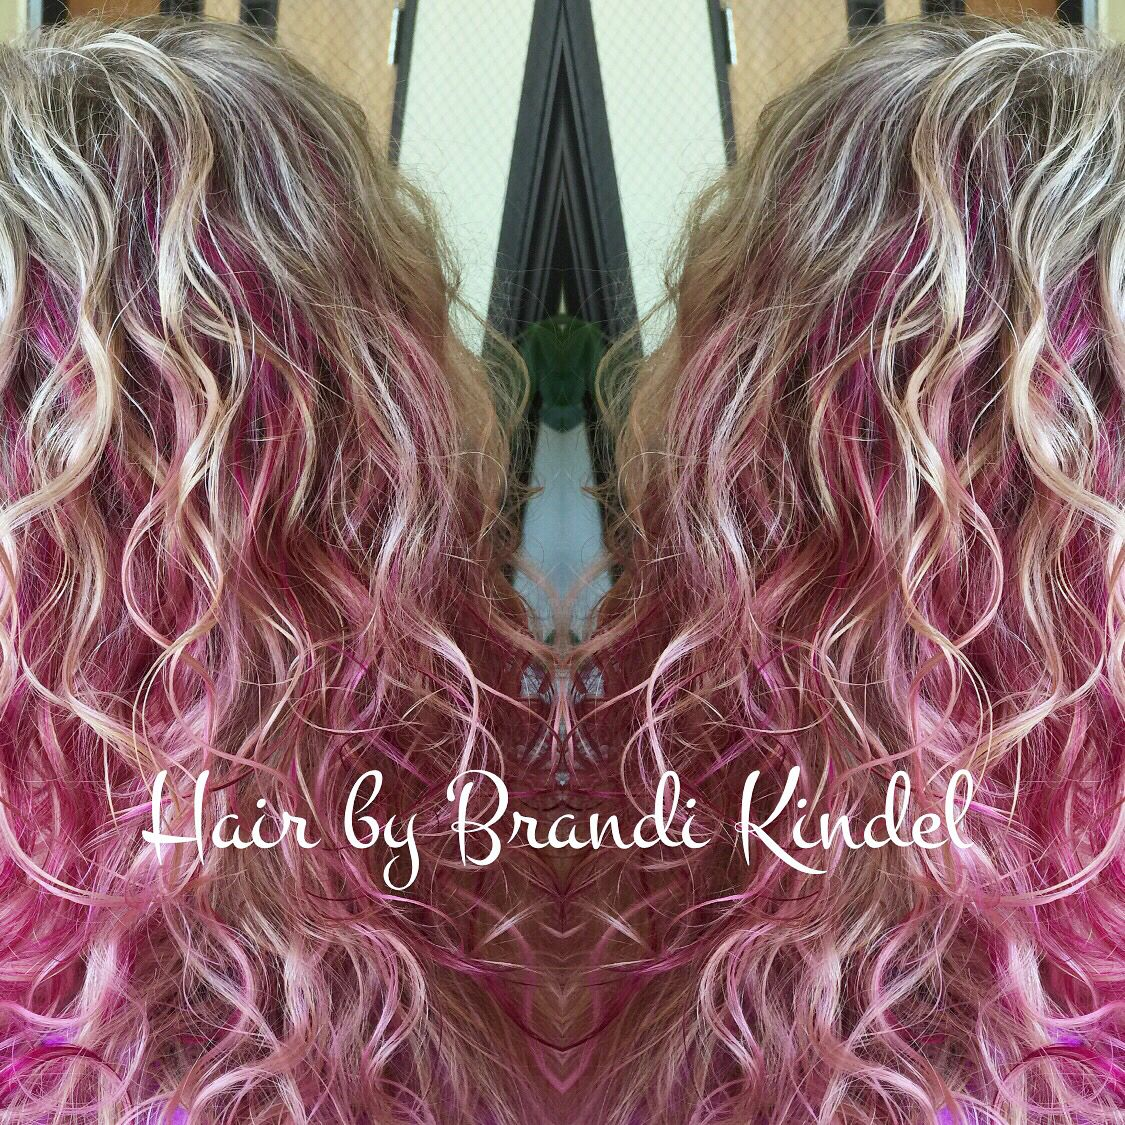 Had some fun adding some more Pink  to Donna's hair today!!! As if she didn't already have beautiful enough hair! Love her hair so much!!!!